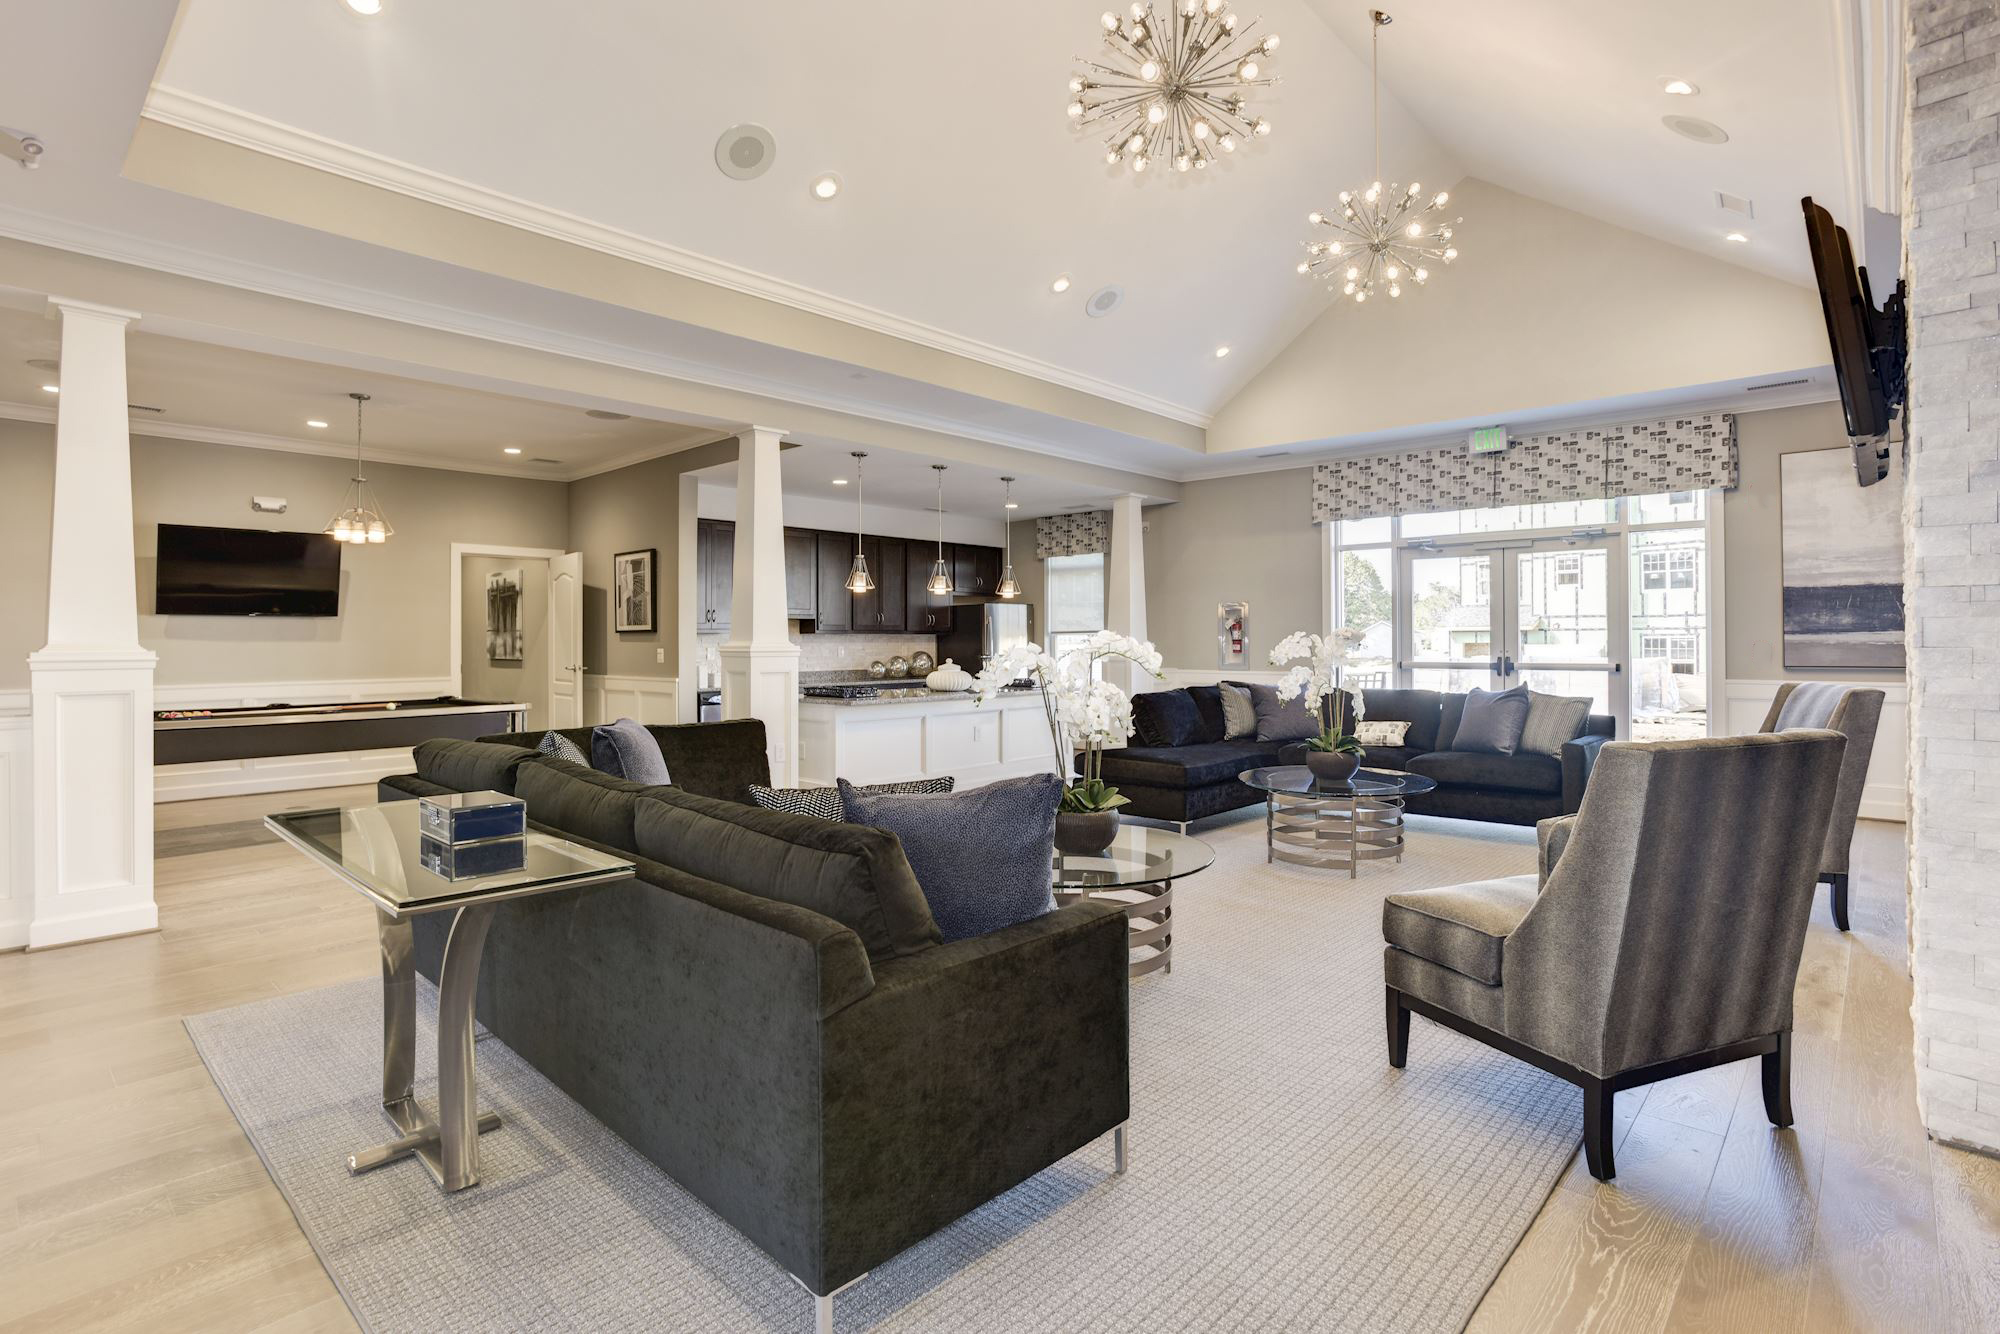 Avanti Luxury Apartments in Bel Air, MD - Clubhouse Gathering Room